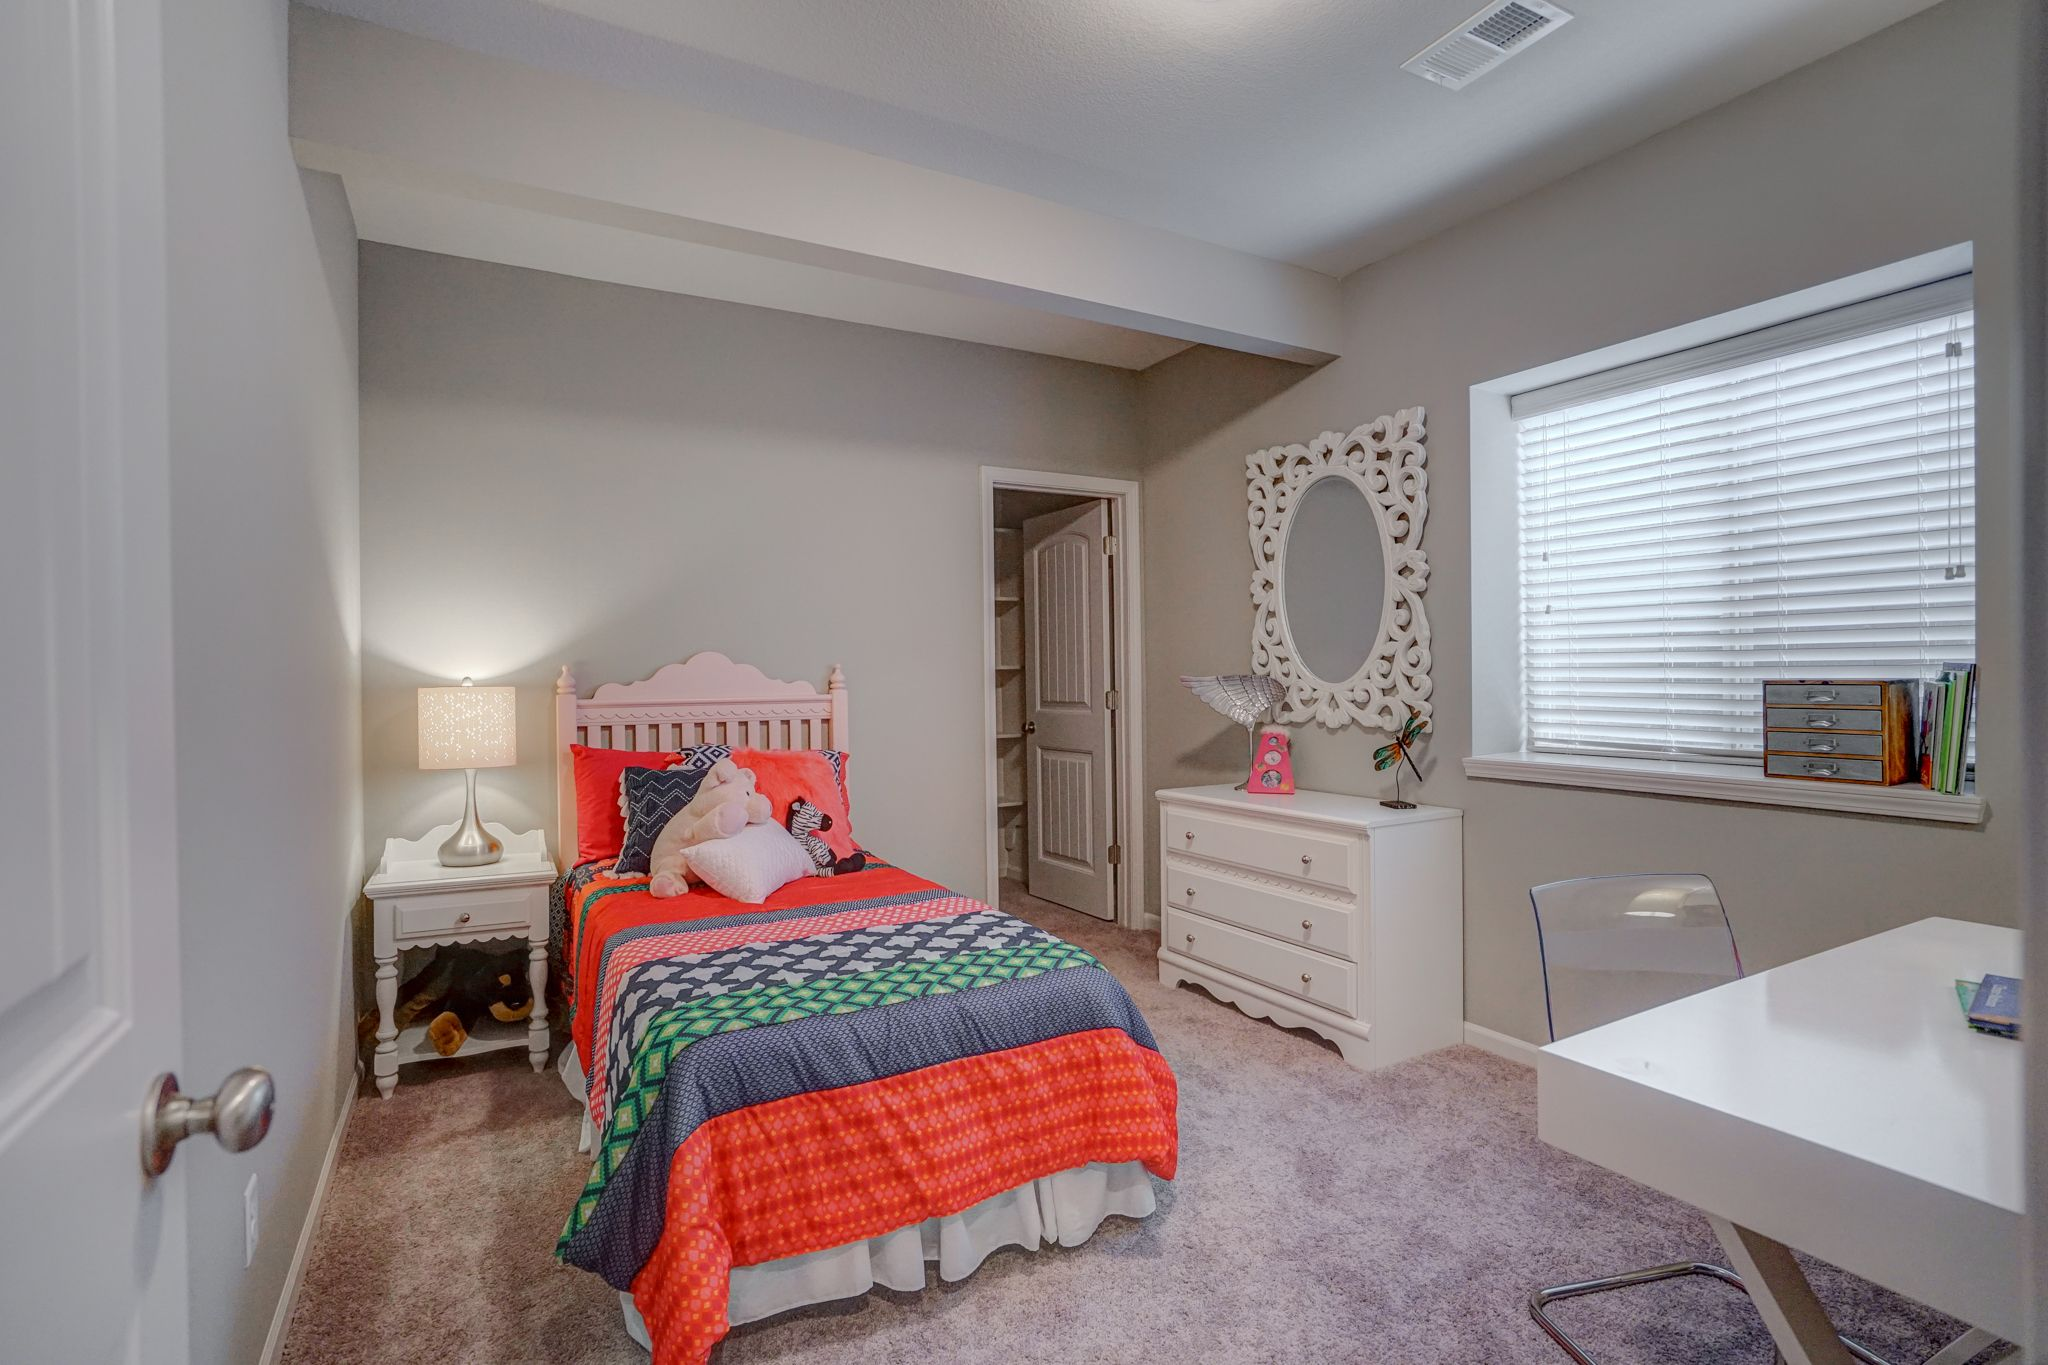 Bedroom featured in the Cypress - IA By Summit Homes in Des Moines, IA